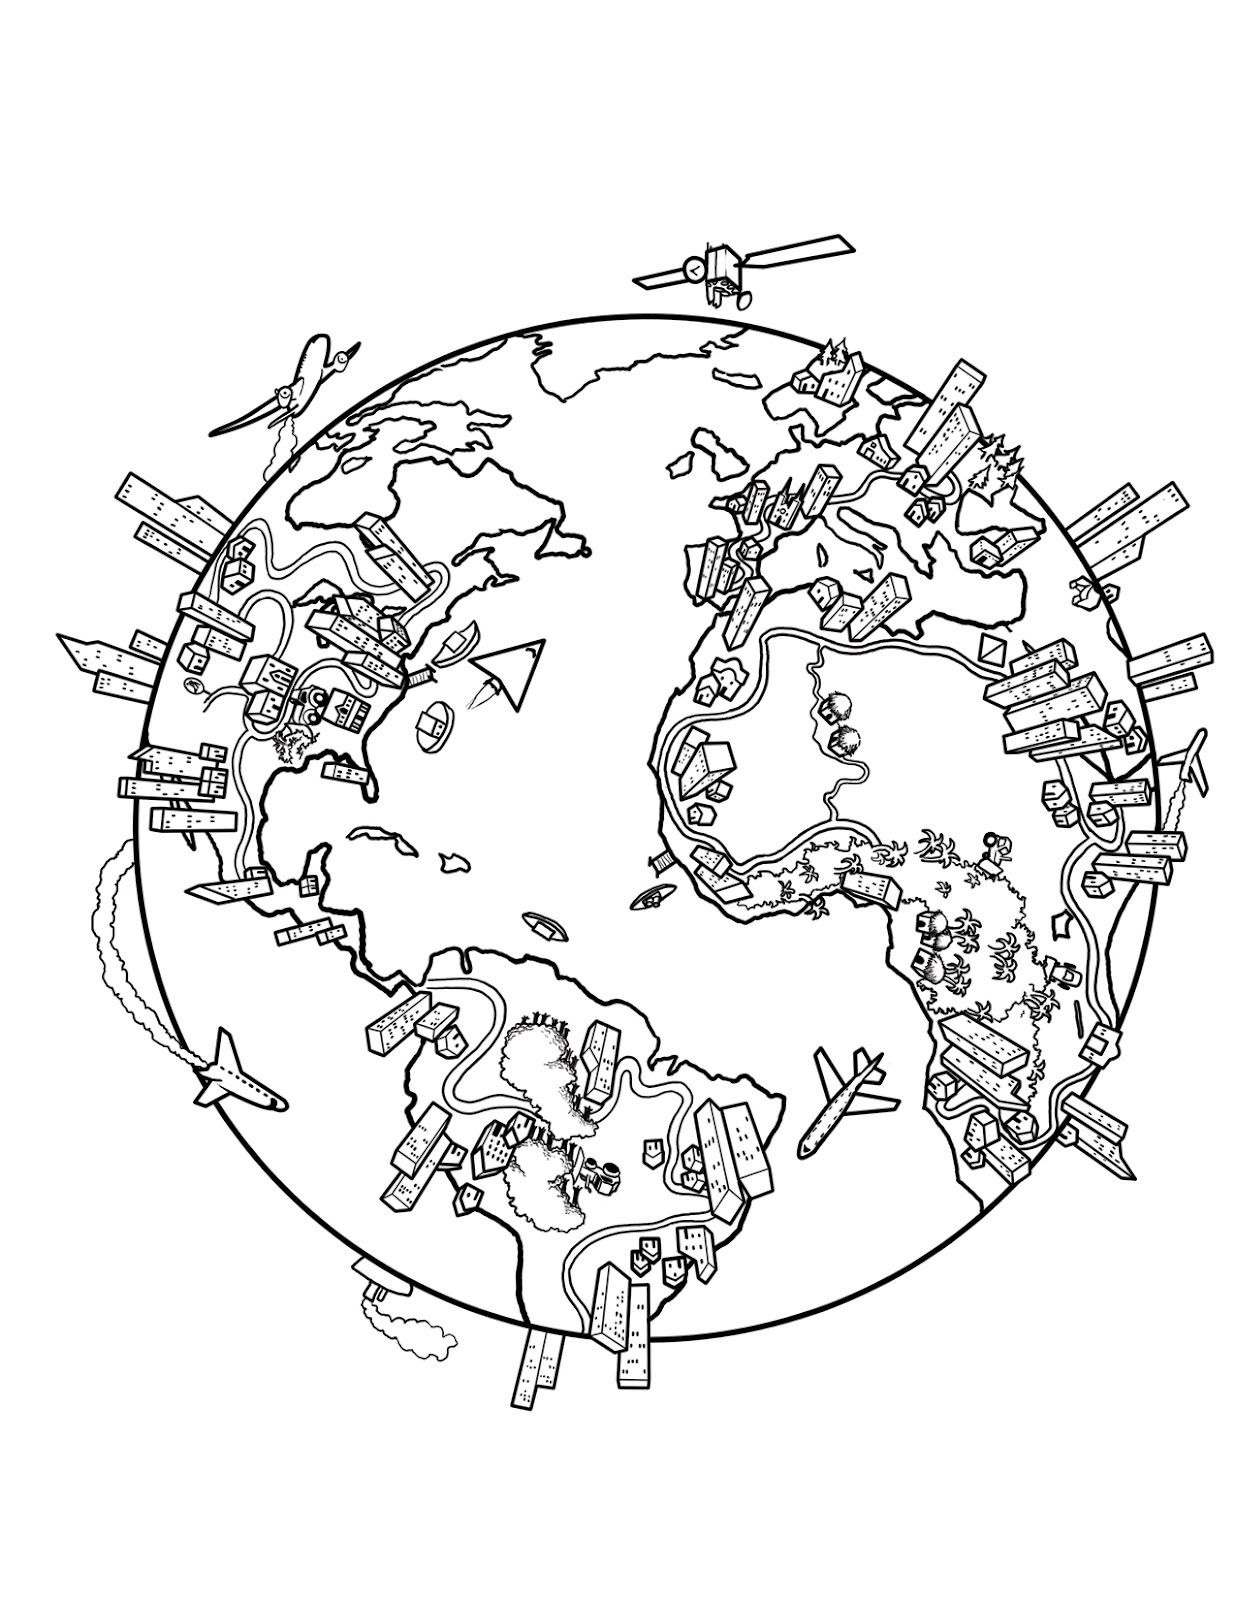 1236x1600 World Map Coloring Page This Is A Drawing I Did A While Back